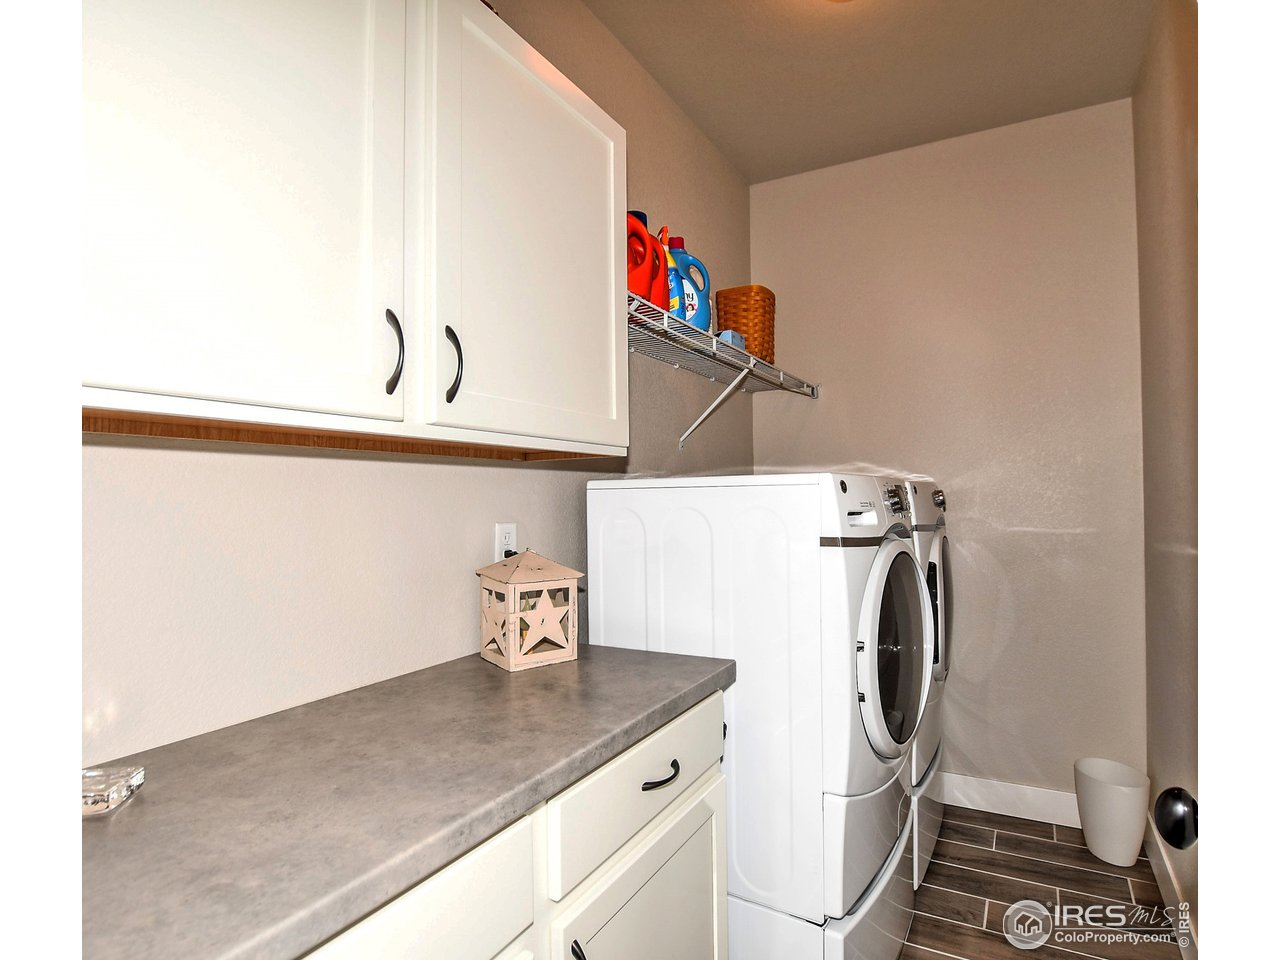 Spacious upstairs laundry conveniently located and washer/dryer stay with the home!